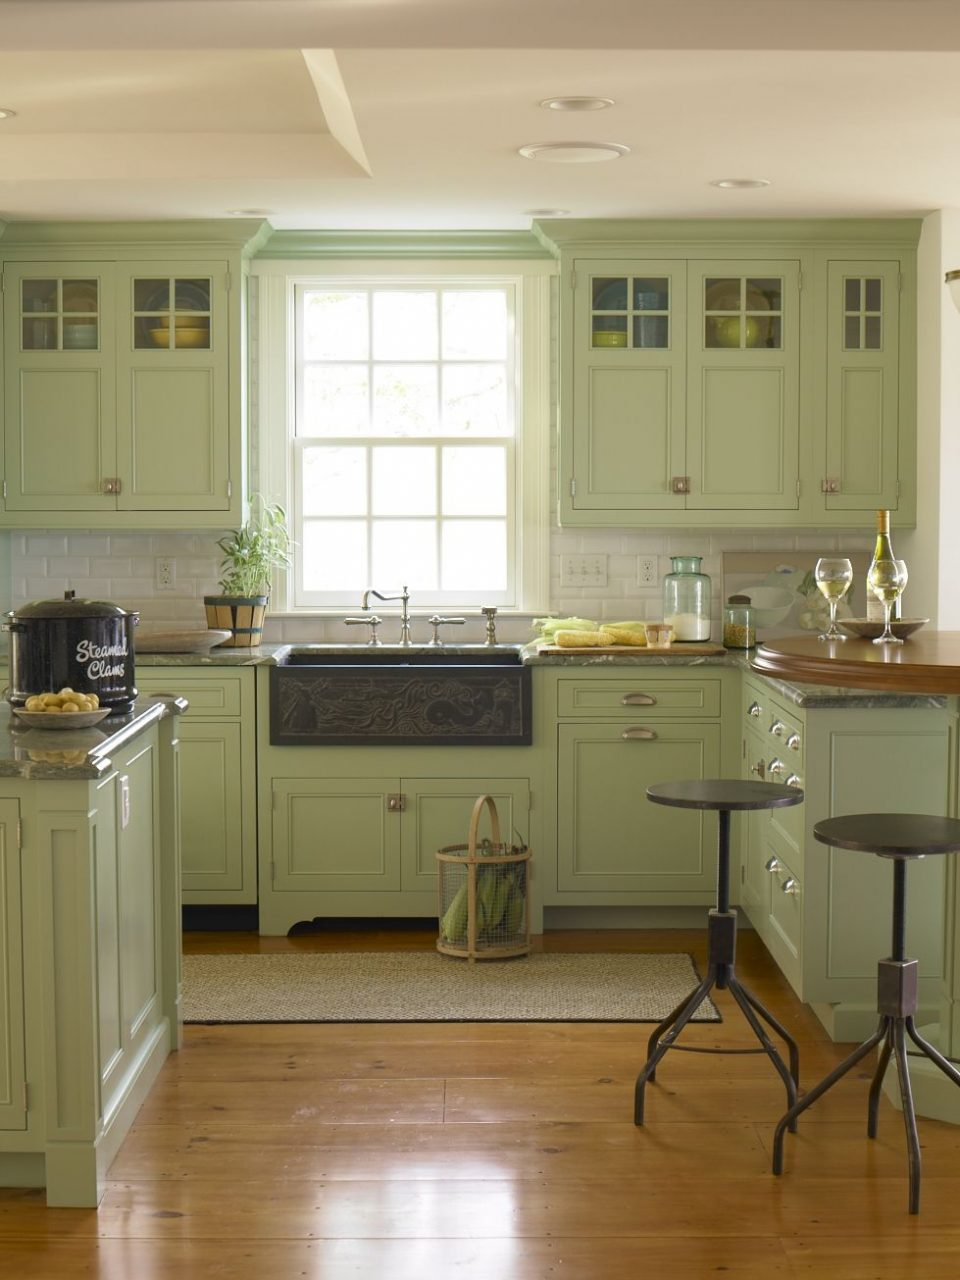 Styling A Summer Country Living Feature Kitchen And Dining Green